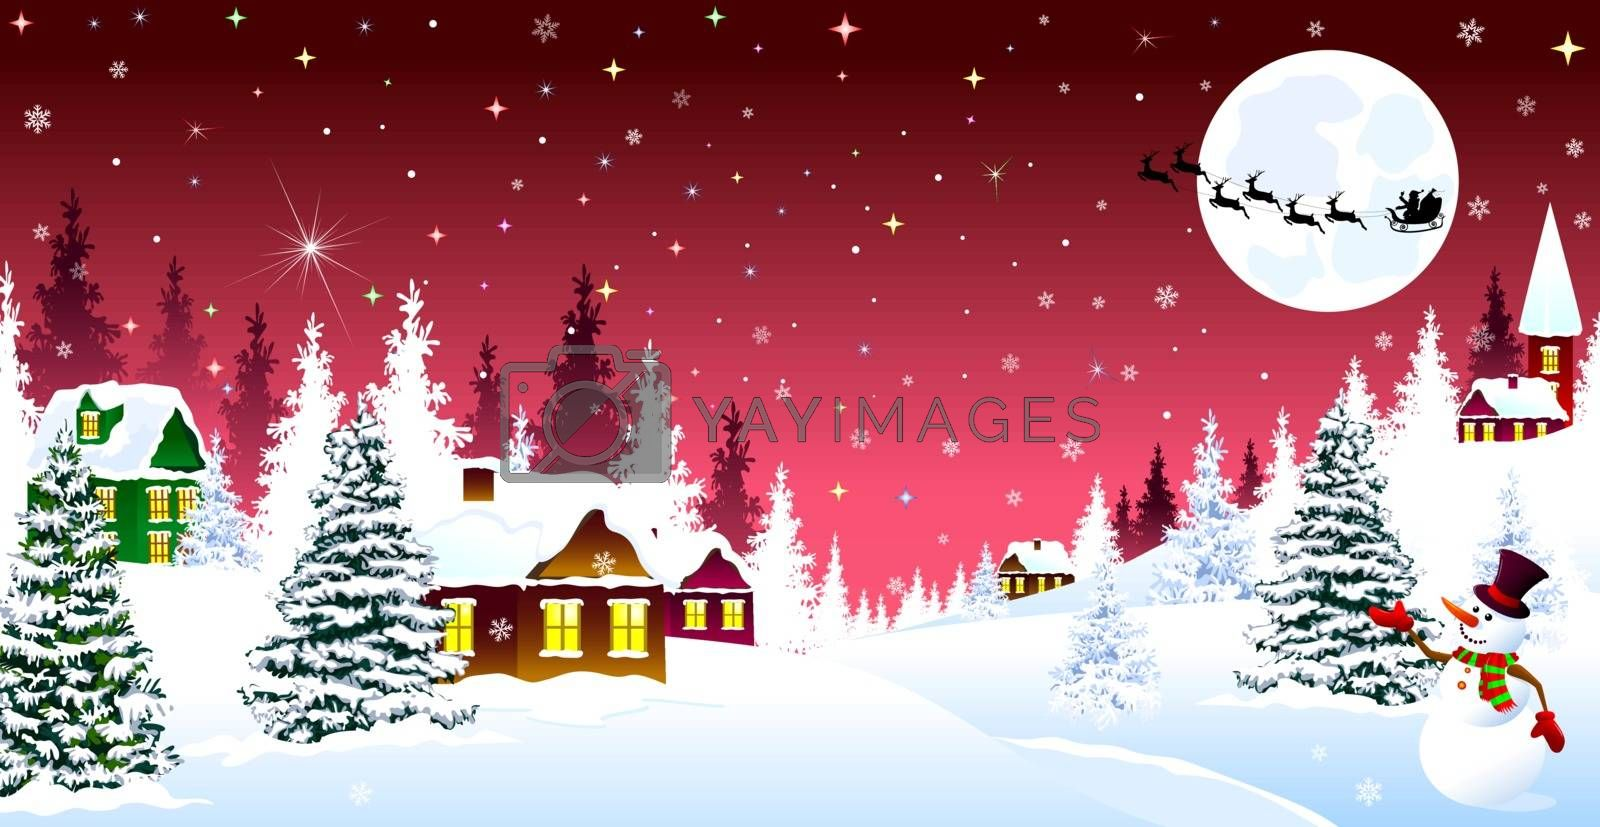 Winter rural landscape. The night eve Christmas. Village, snow, forest. Shining stars and snowflakes in the night sky. Santa on a sleigh on the background of the moon. Christmas winter night scene.